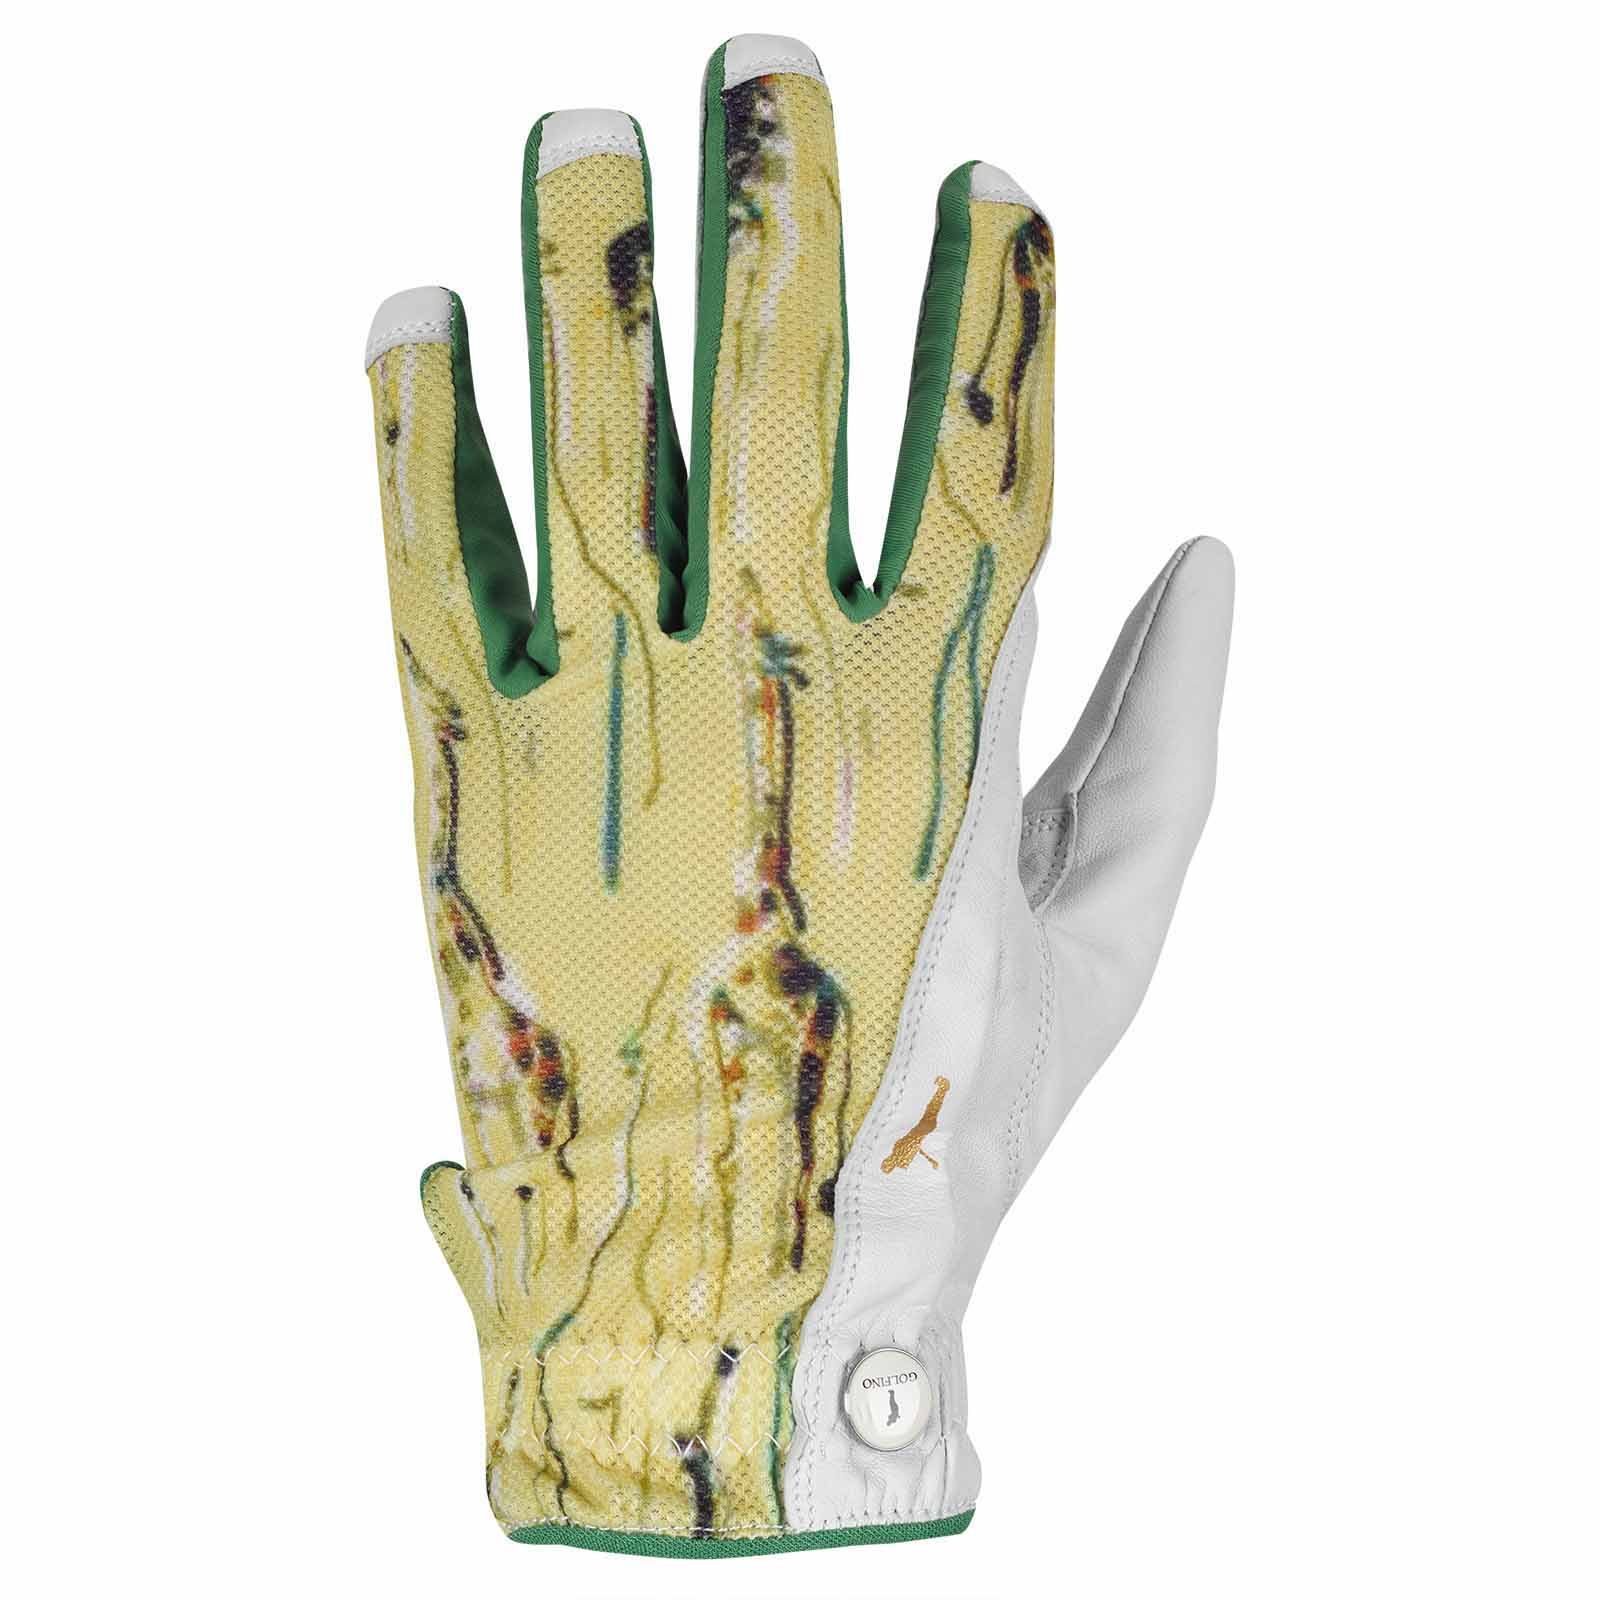 Ladies' golf glove (left hand) made from leather with textile insert